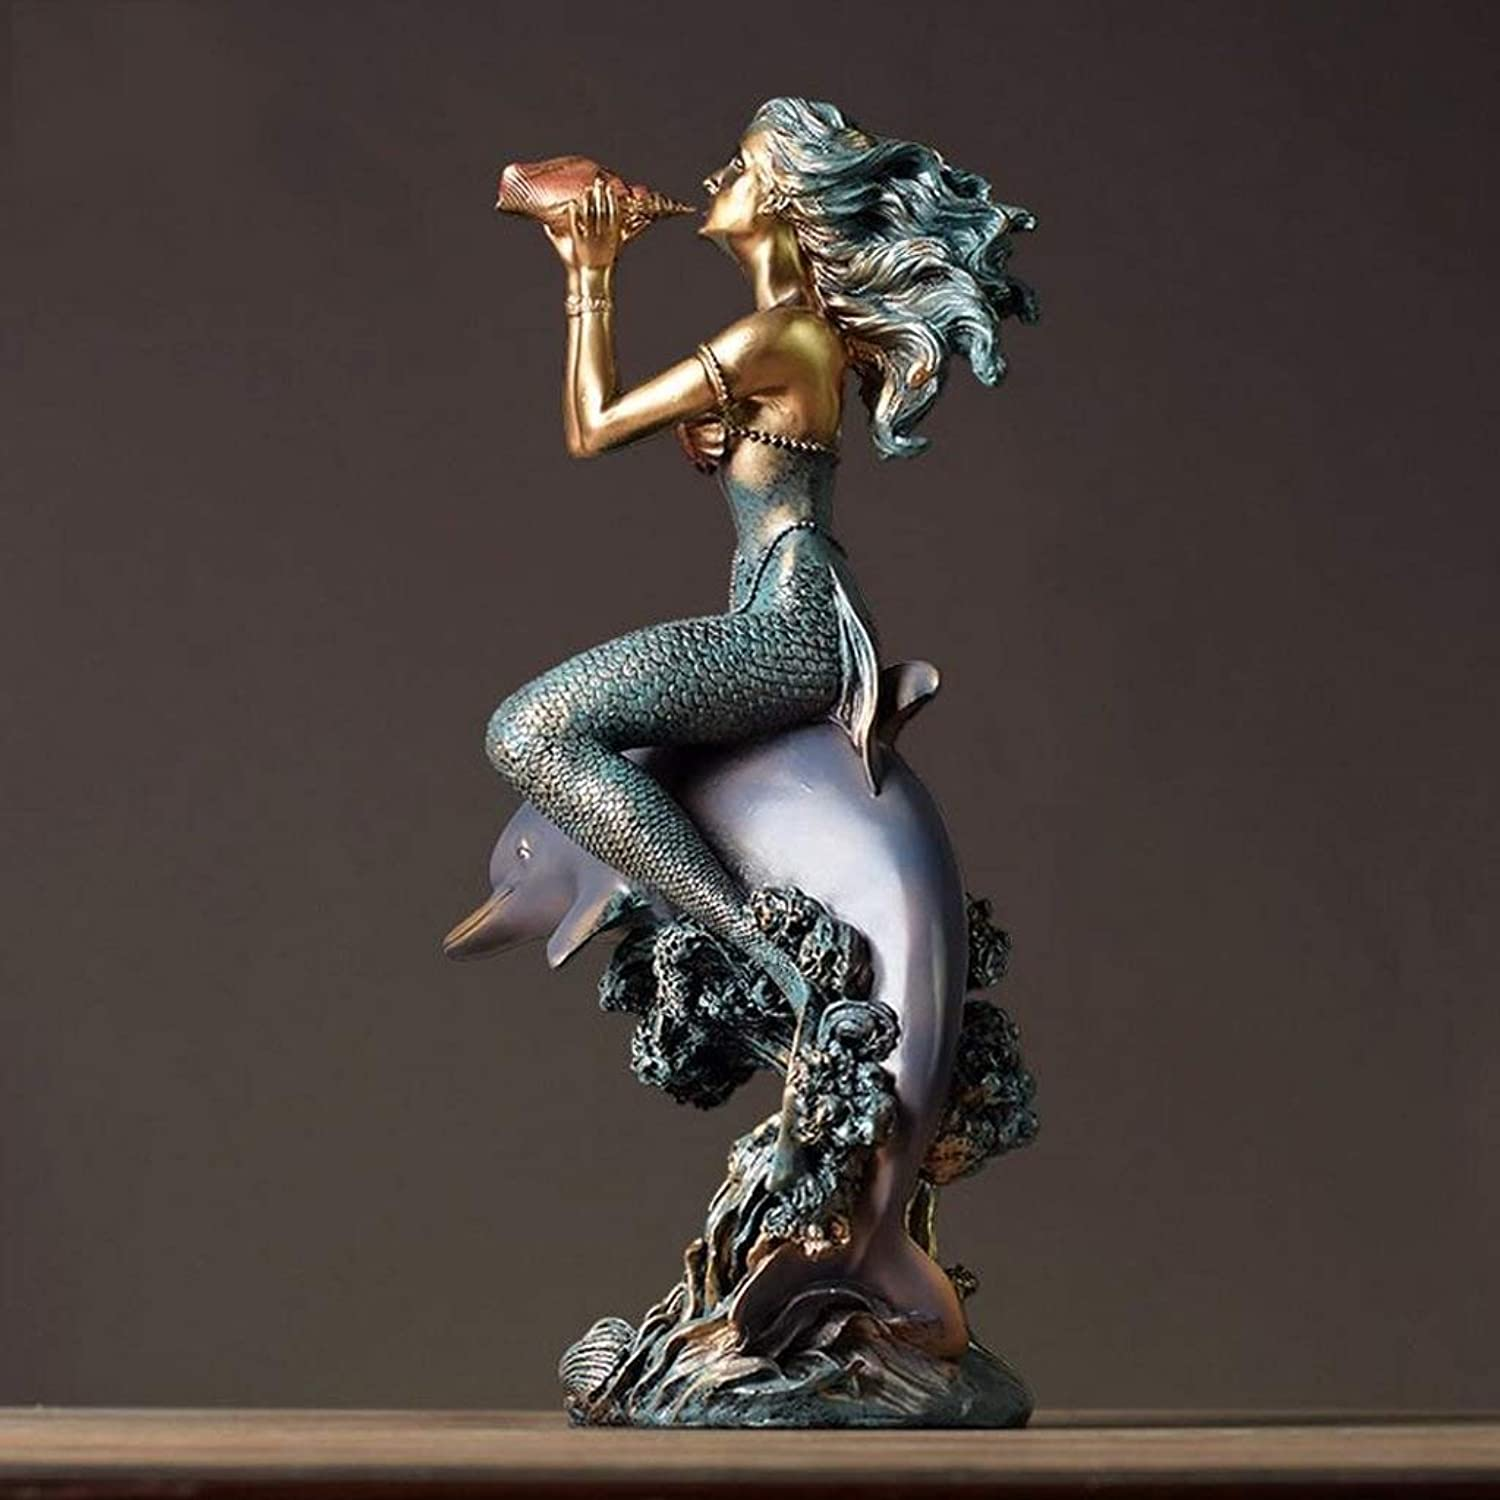 NSHUN Modern Mermaid Sculpture Art, Resin Crafts Home Accessories Living Room Wedding Gift Bedroom Furnishings Decorative Ornaments